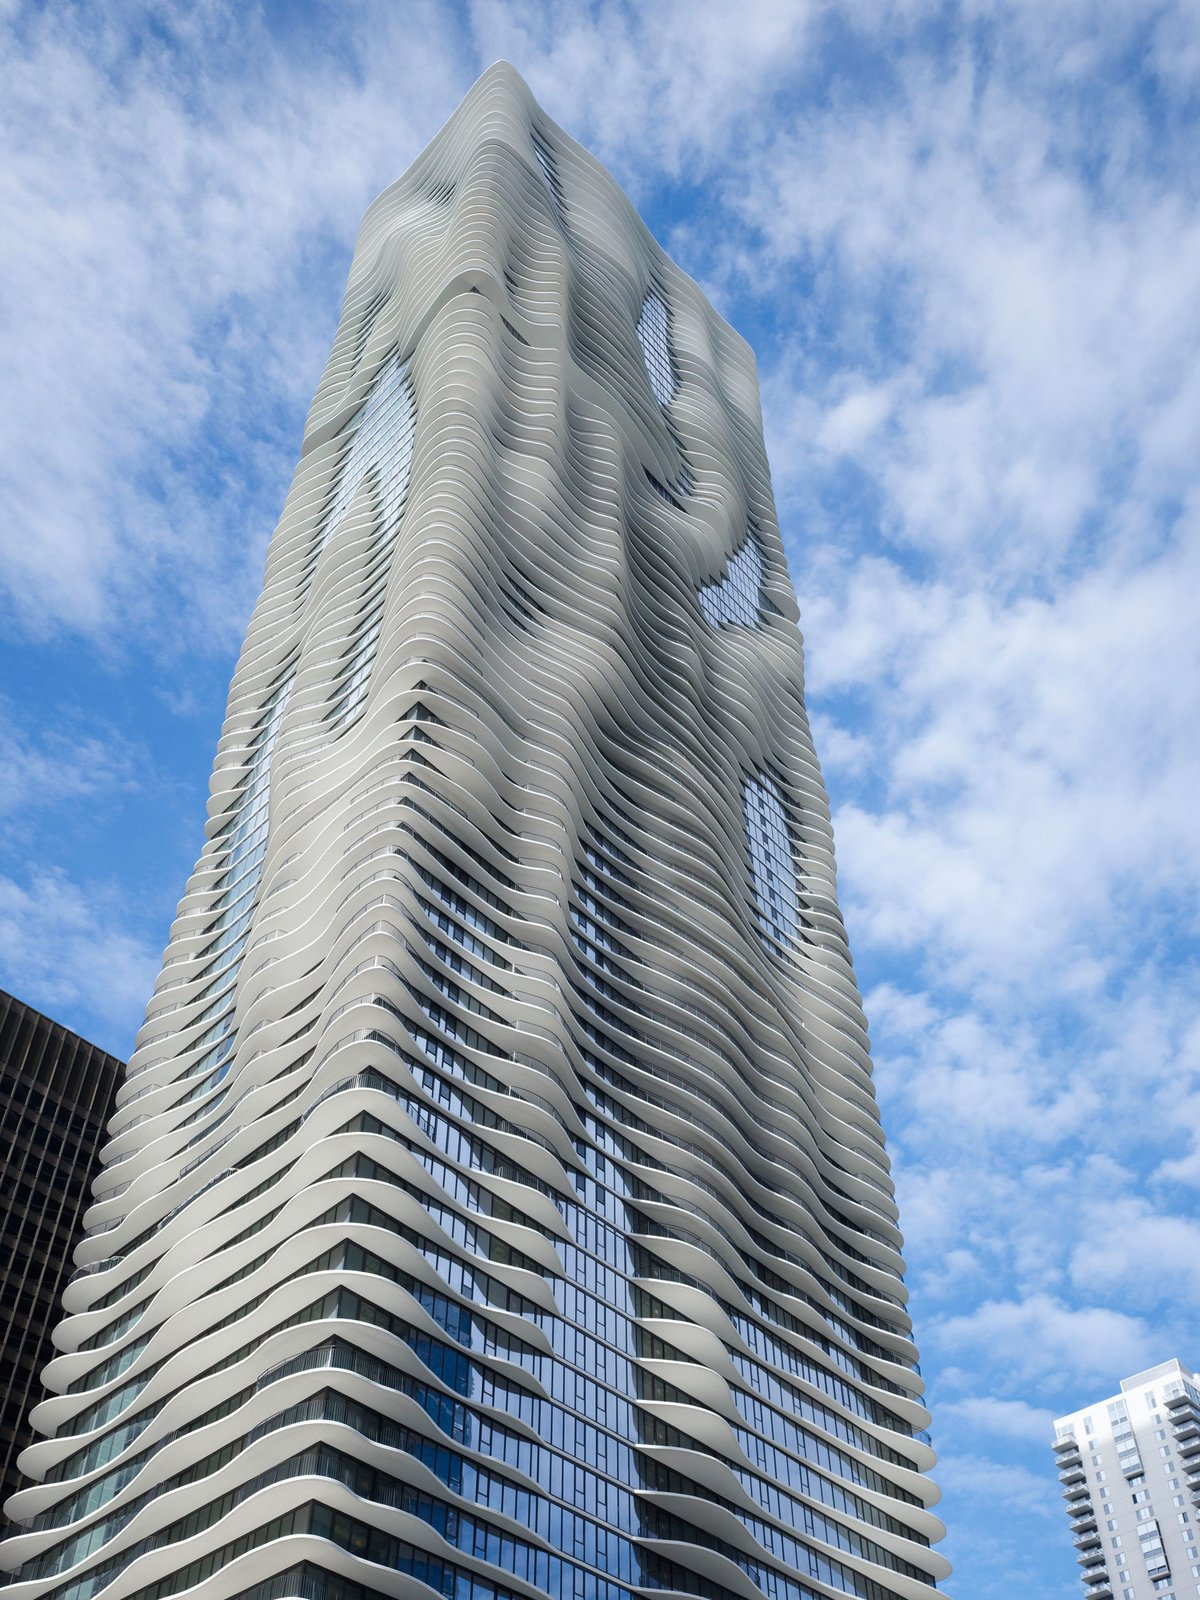 The innovative skyscraper, which is 82 stories tall, features an undulating shape designed to capture views of Chicago landmarks.  Photo 6 of 20 in The 9 Most Influential Buildings of the Decade from Architecture Inspiration of the Day: Aqua Tower in Chicago